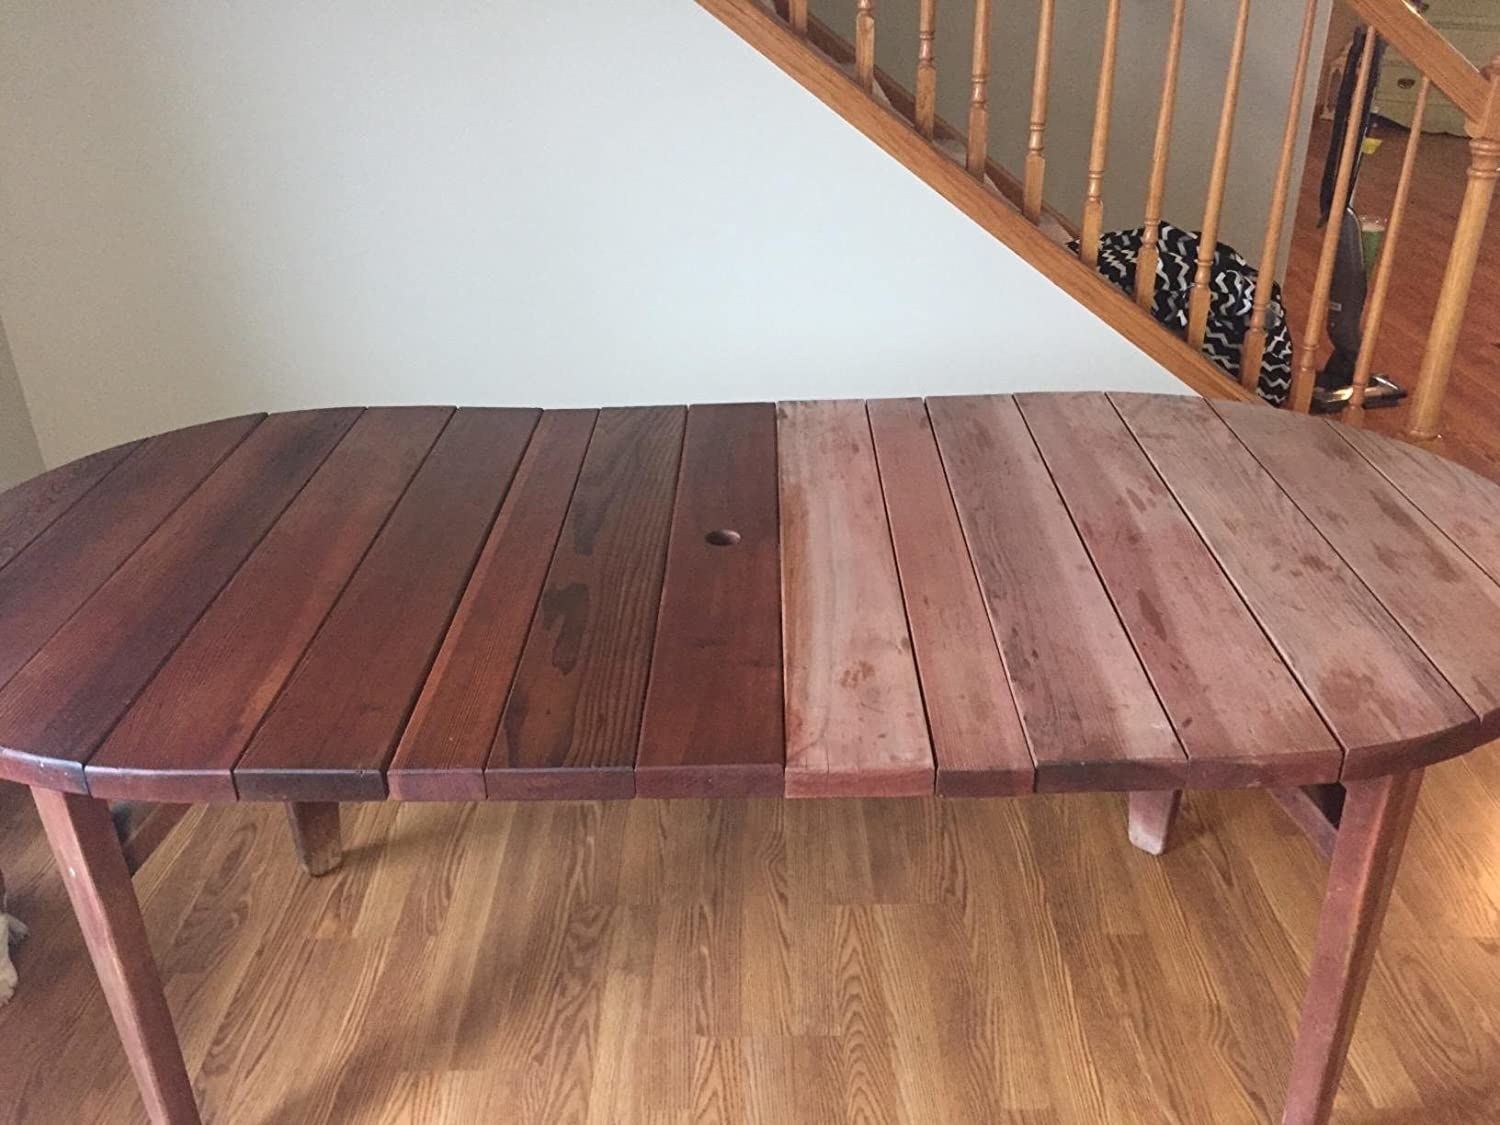 An outdoor teakwood table, half looking dried out and worn, the other half treated with the product and looking rich, hydrated, and dark